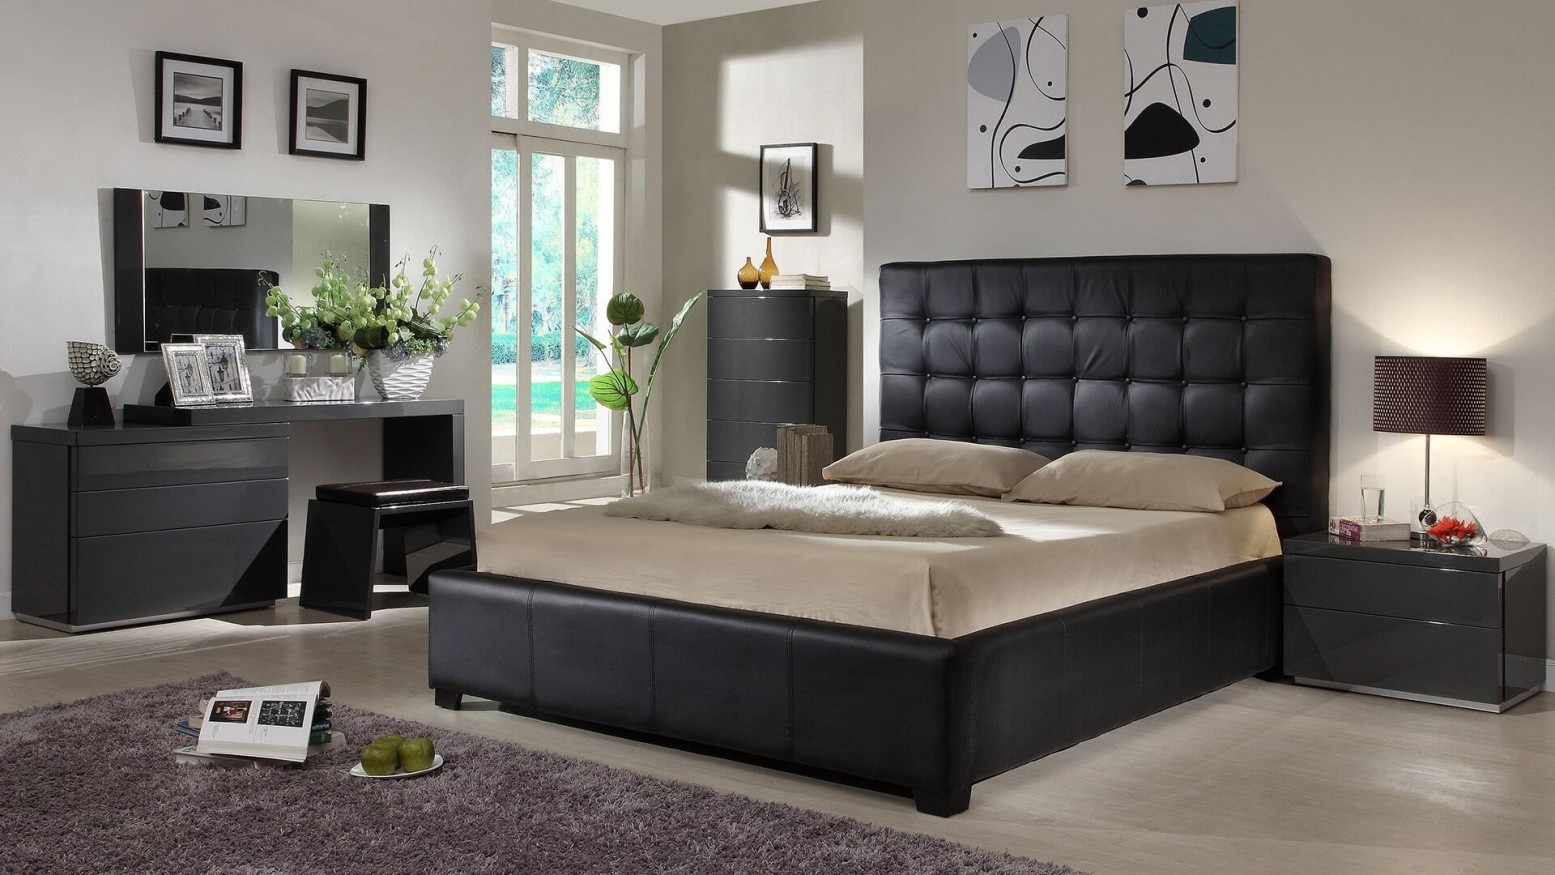 Athens 3 Piece King Size Bedroom Set Black Buy Online At Best Price